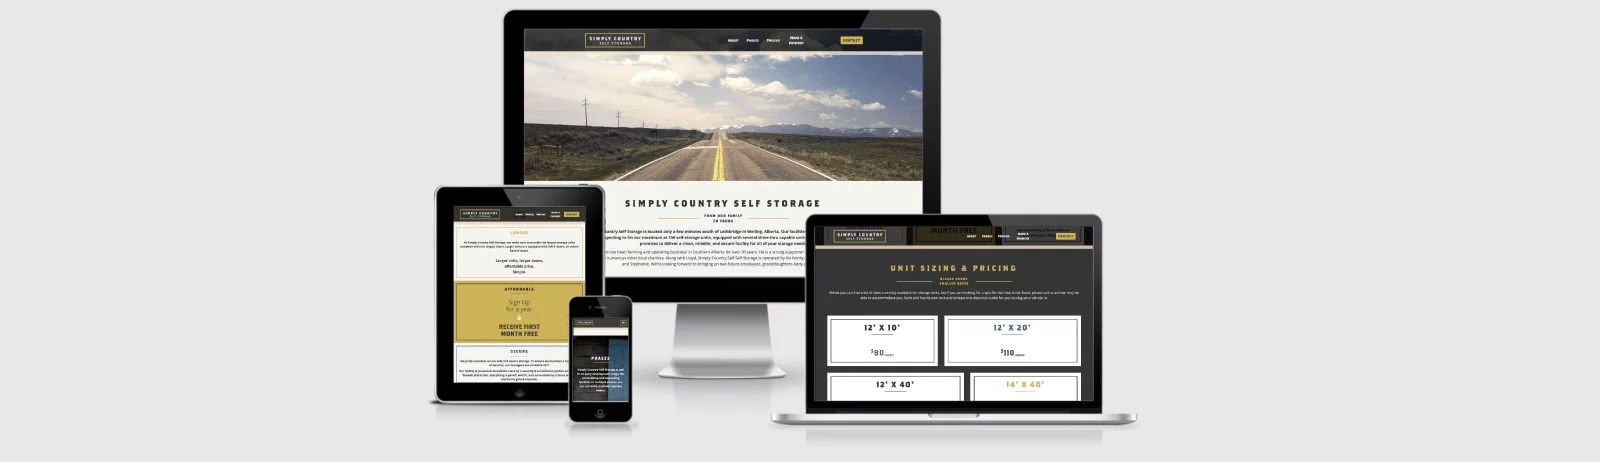 Website Design Mockup for Simply Country Self Storage